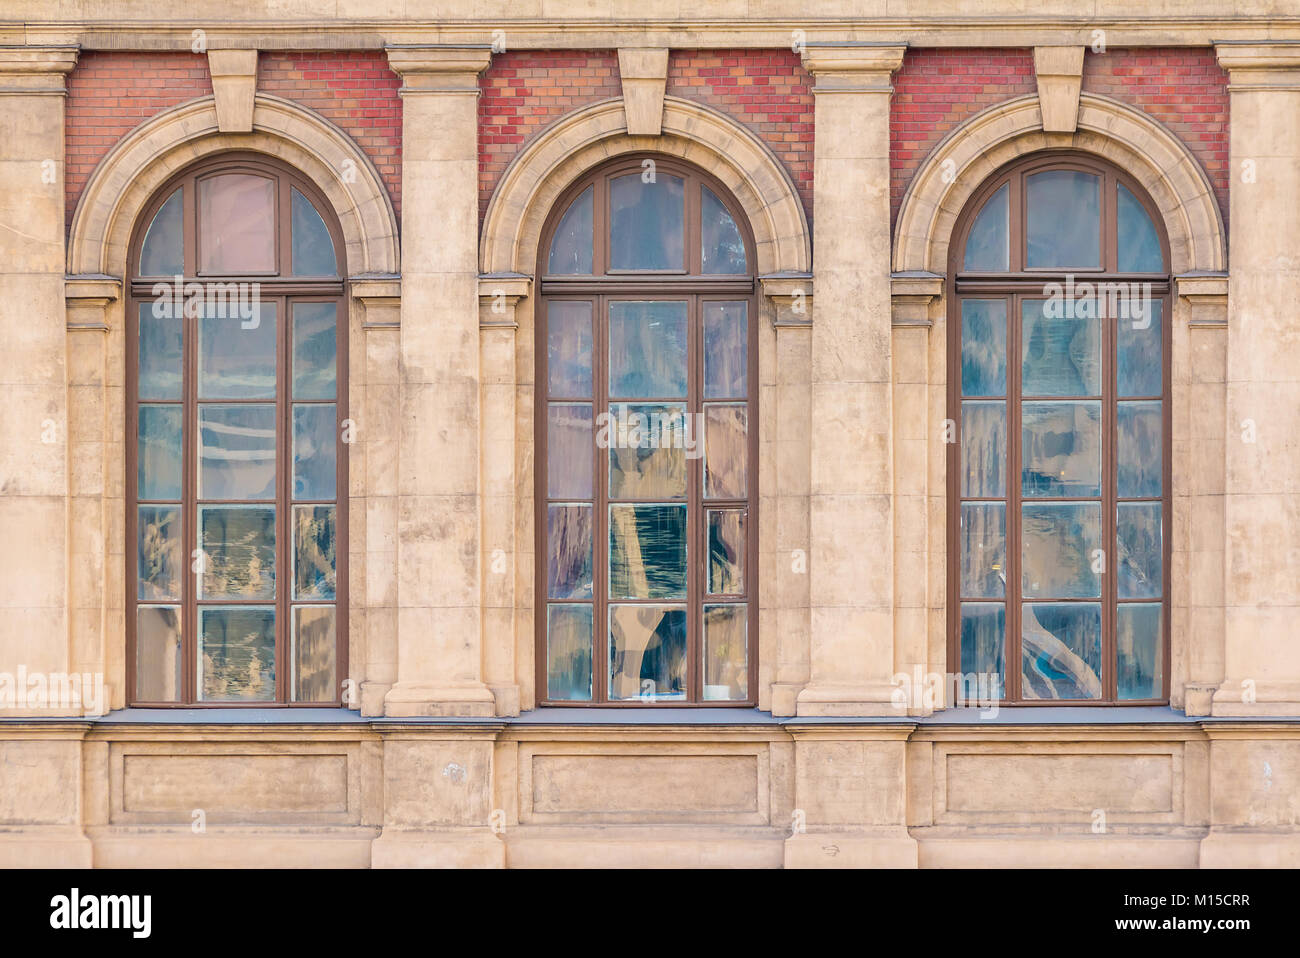 Three windows in a row on the facade of the urban historic building front view, Saint Petersburg, Russia - Stock Image